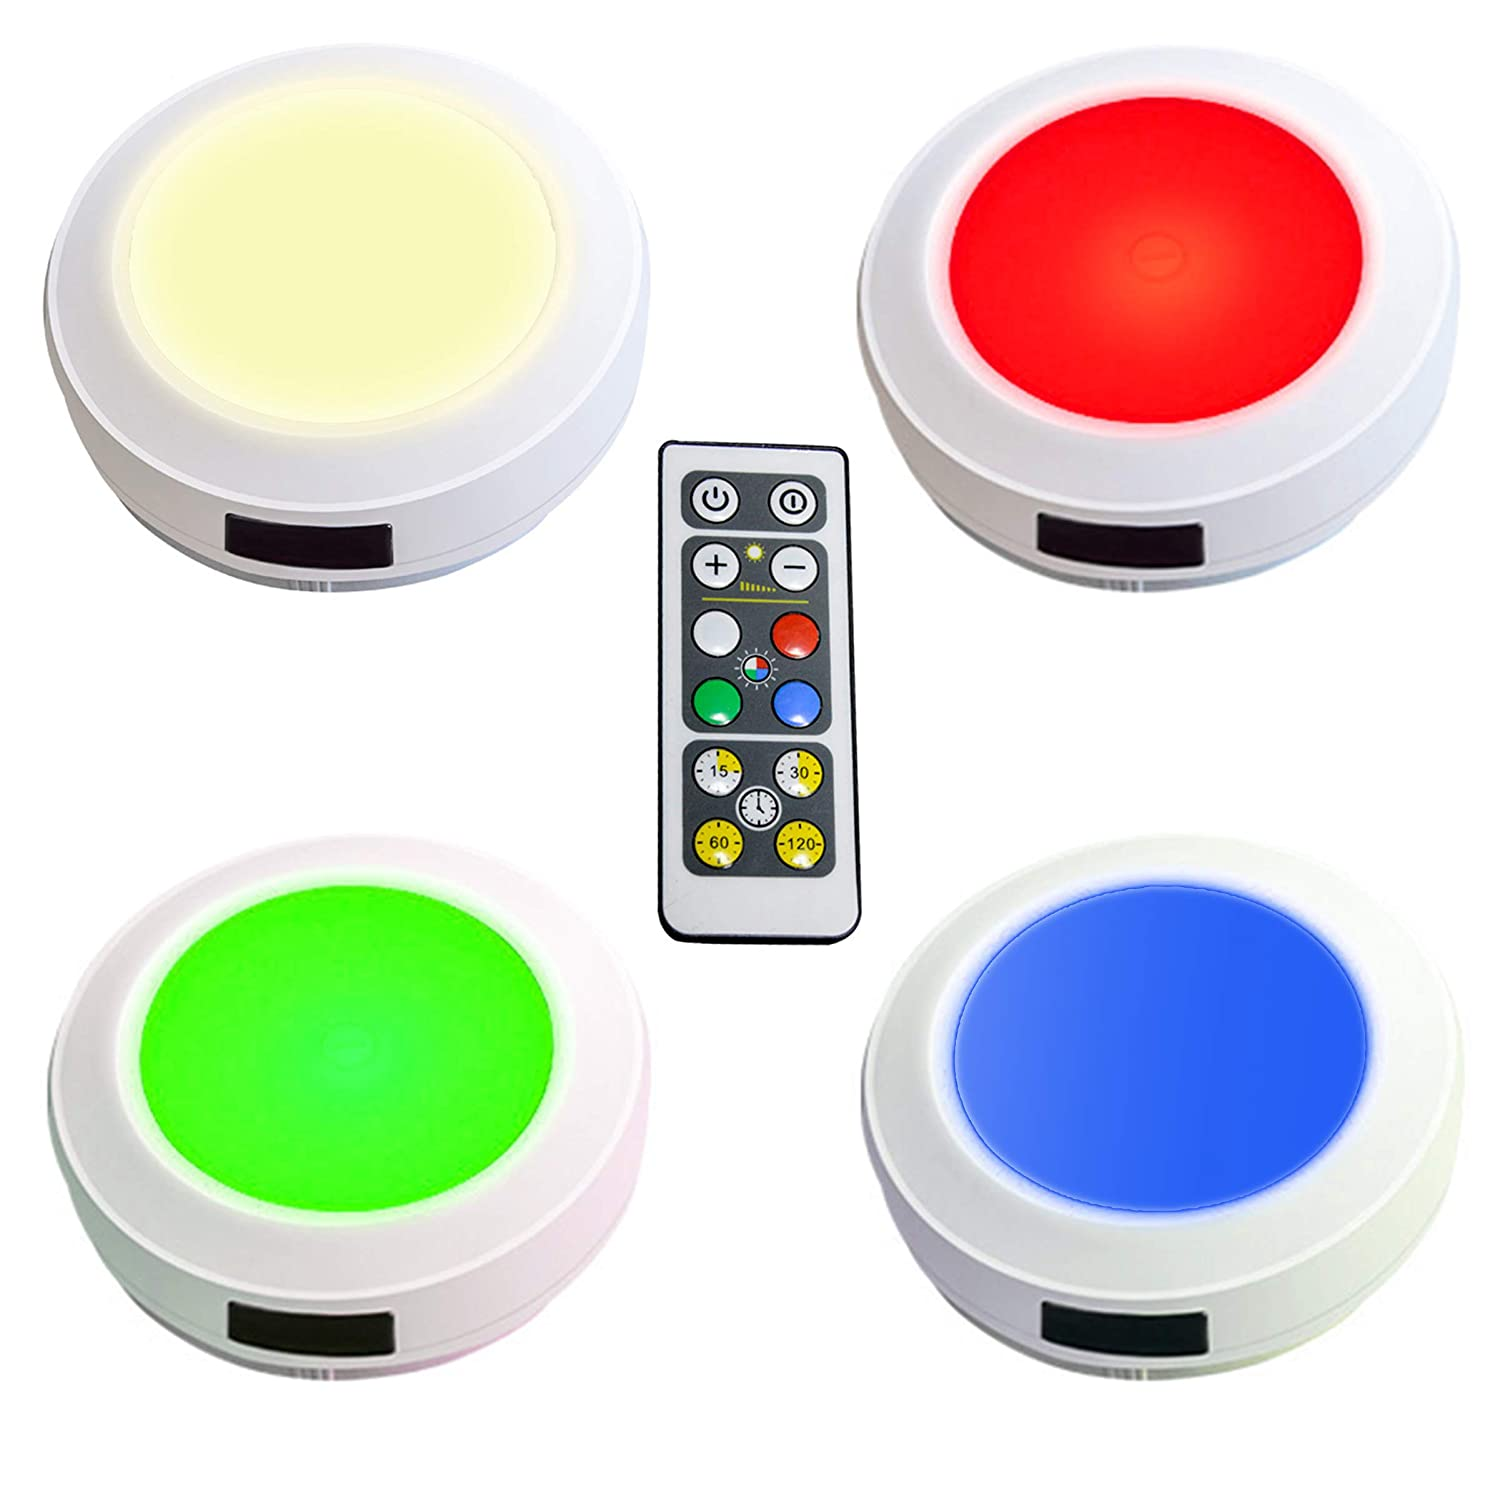 HONWELL Push Light RGB Lights Puck Lights with Remote Battery Operated Lights Wireless Touch Lights Tap Light Dimmable Closet Lights Under Cabinet Counter Lights Stick on Lights (4 Color)